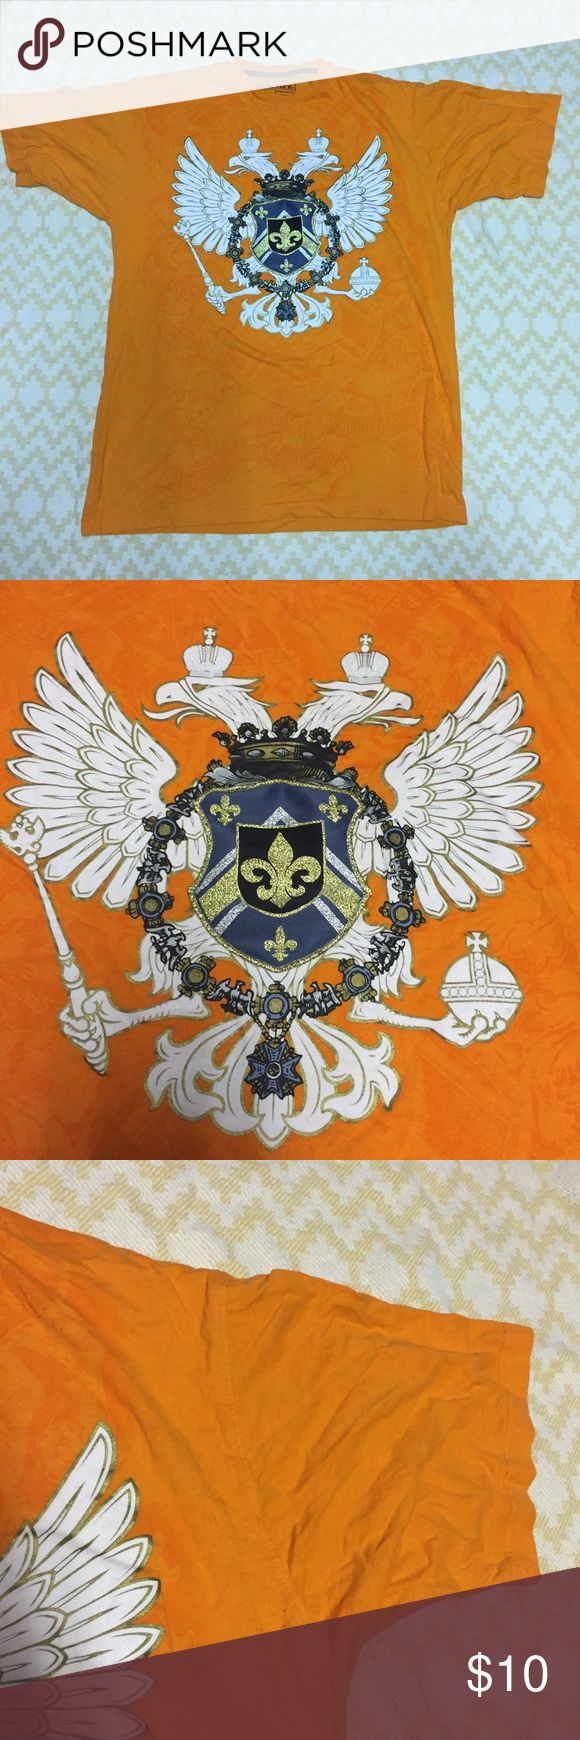 Orange Avirex crest shirt Cool Avirex orange shirt with Crest and two large birds. In good condition. Size large no visible flaws, stains, or pills. Avirex Shirts Tees - Short Sleeve